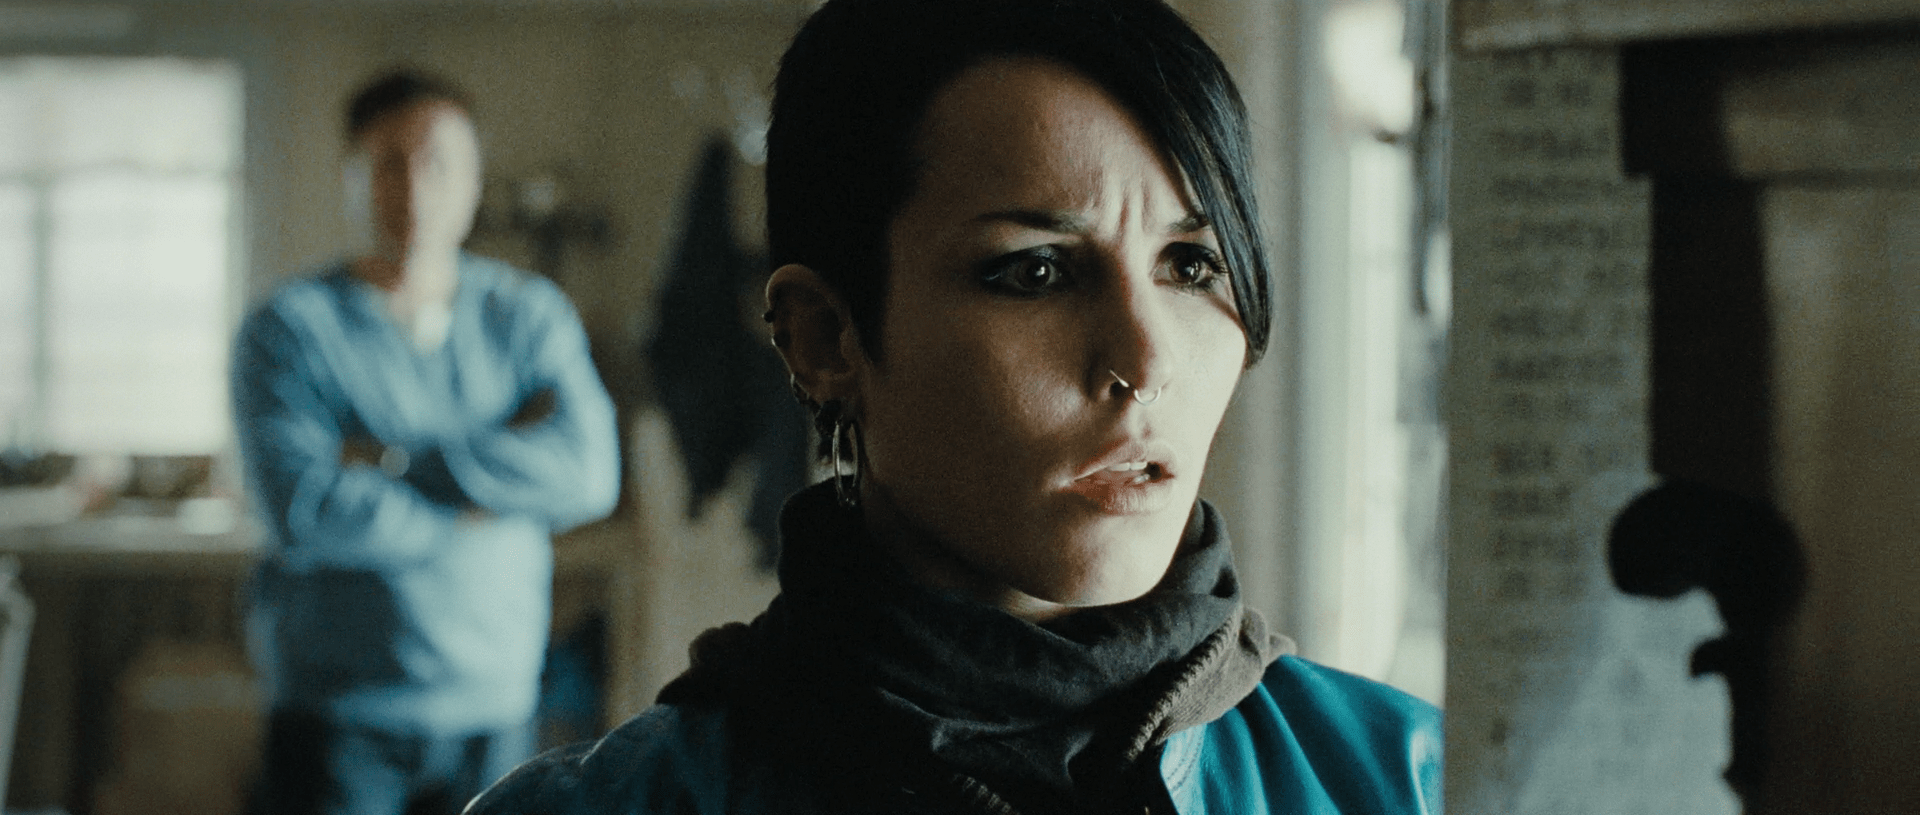 'The Girl With The Dragon Tattoo' 2009 Review Express Ideas And Designs